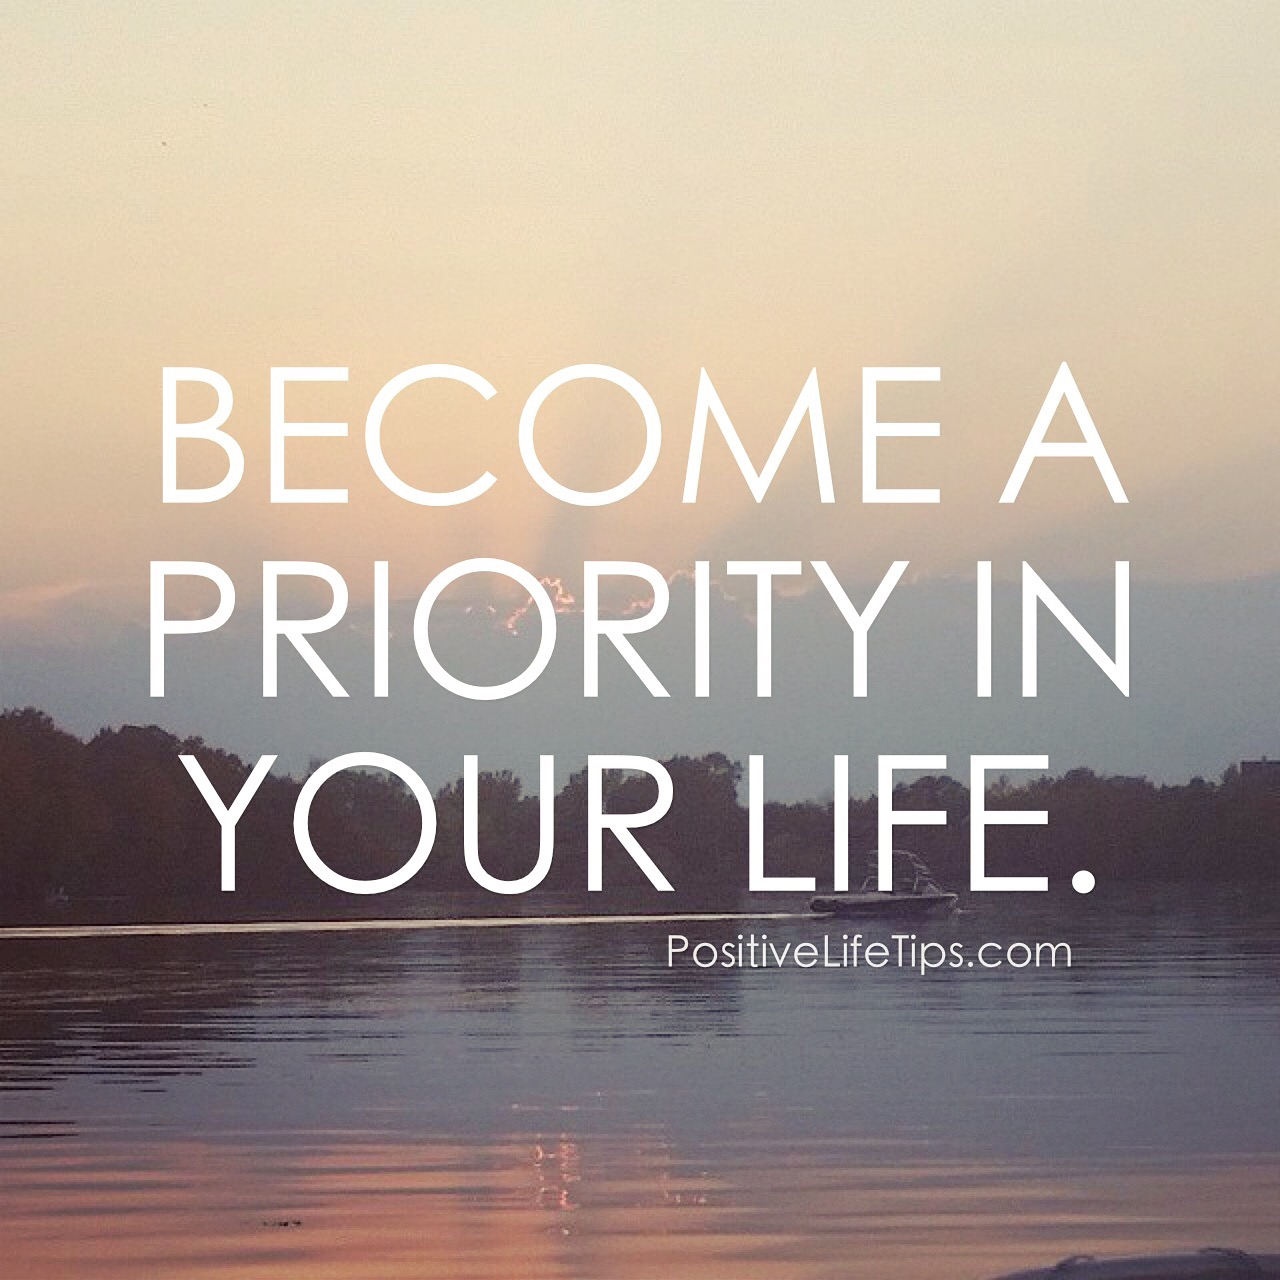 BECOME-A-PRIORITY-IN-YOUR-LIFE-wallpaper-wp5603314